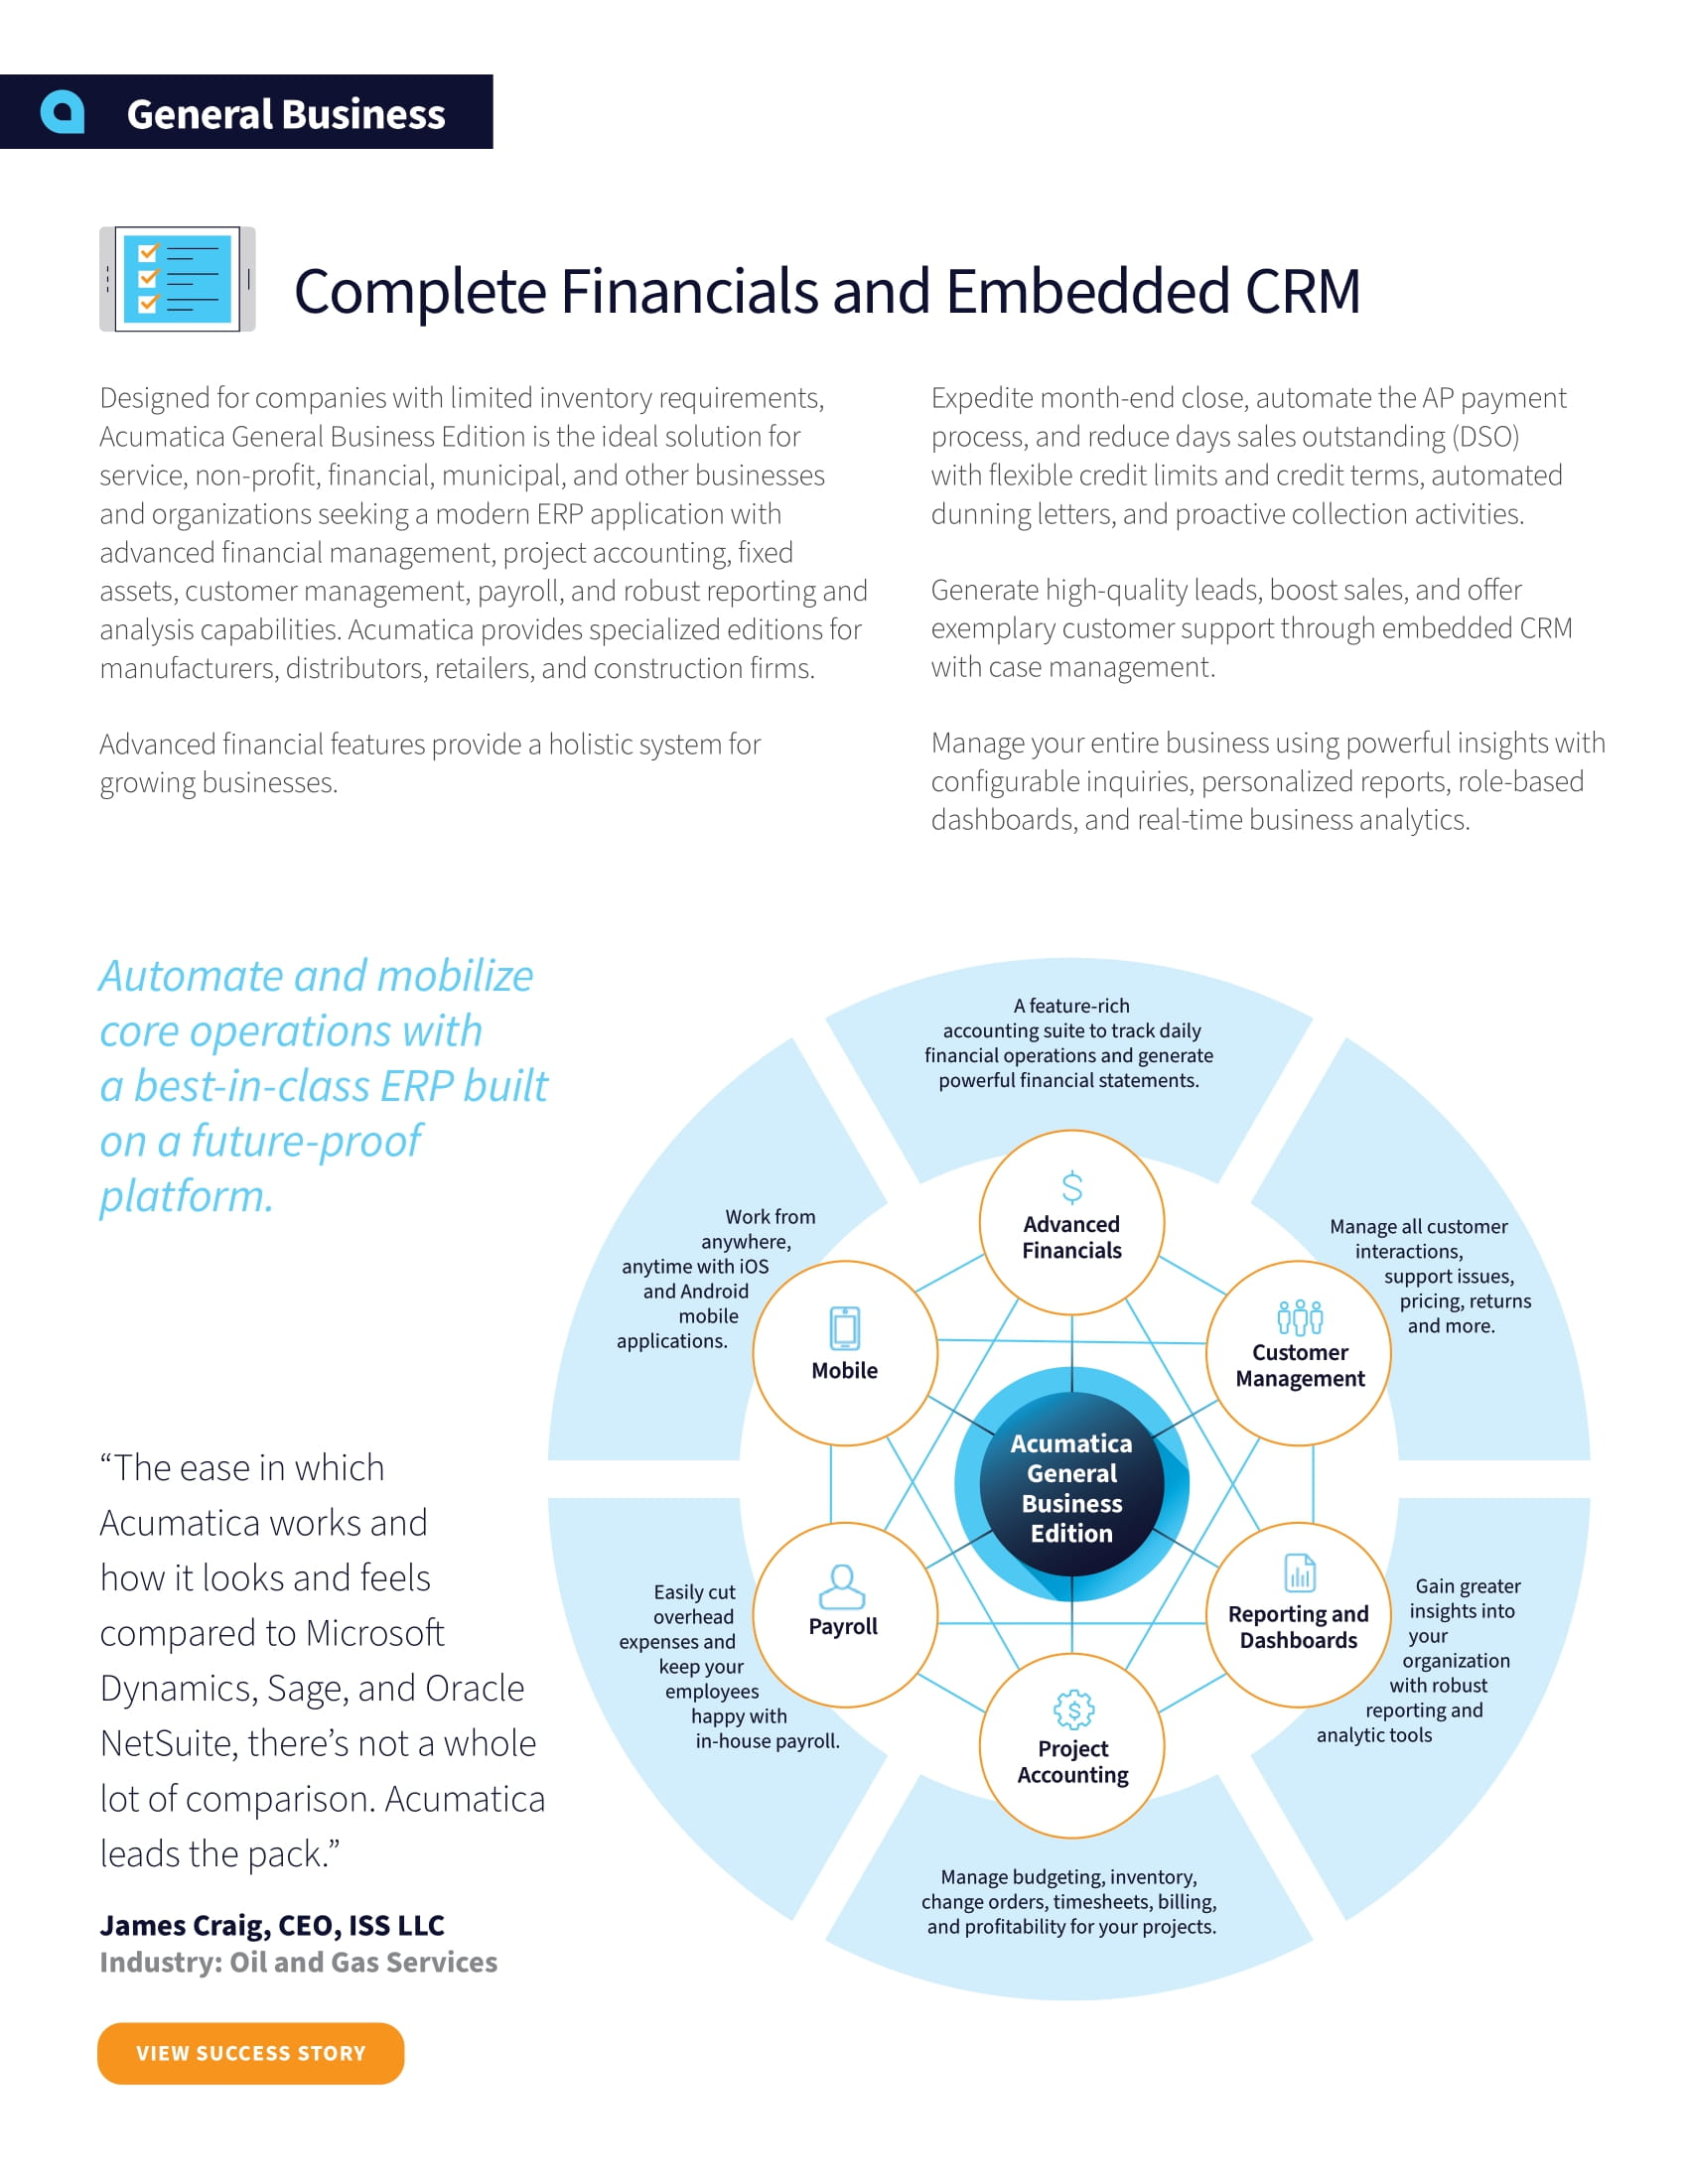 Can Modern ERP Systems Help Your Business Grow?, page 1